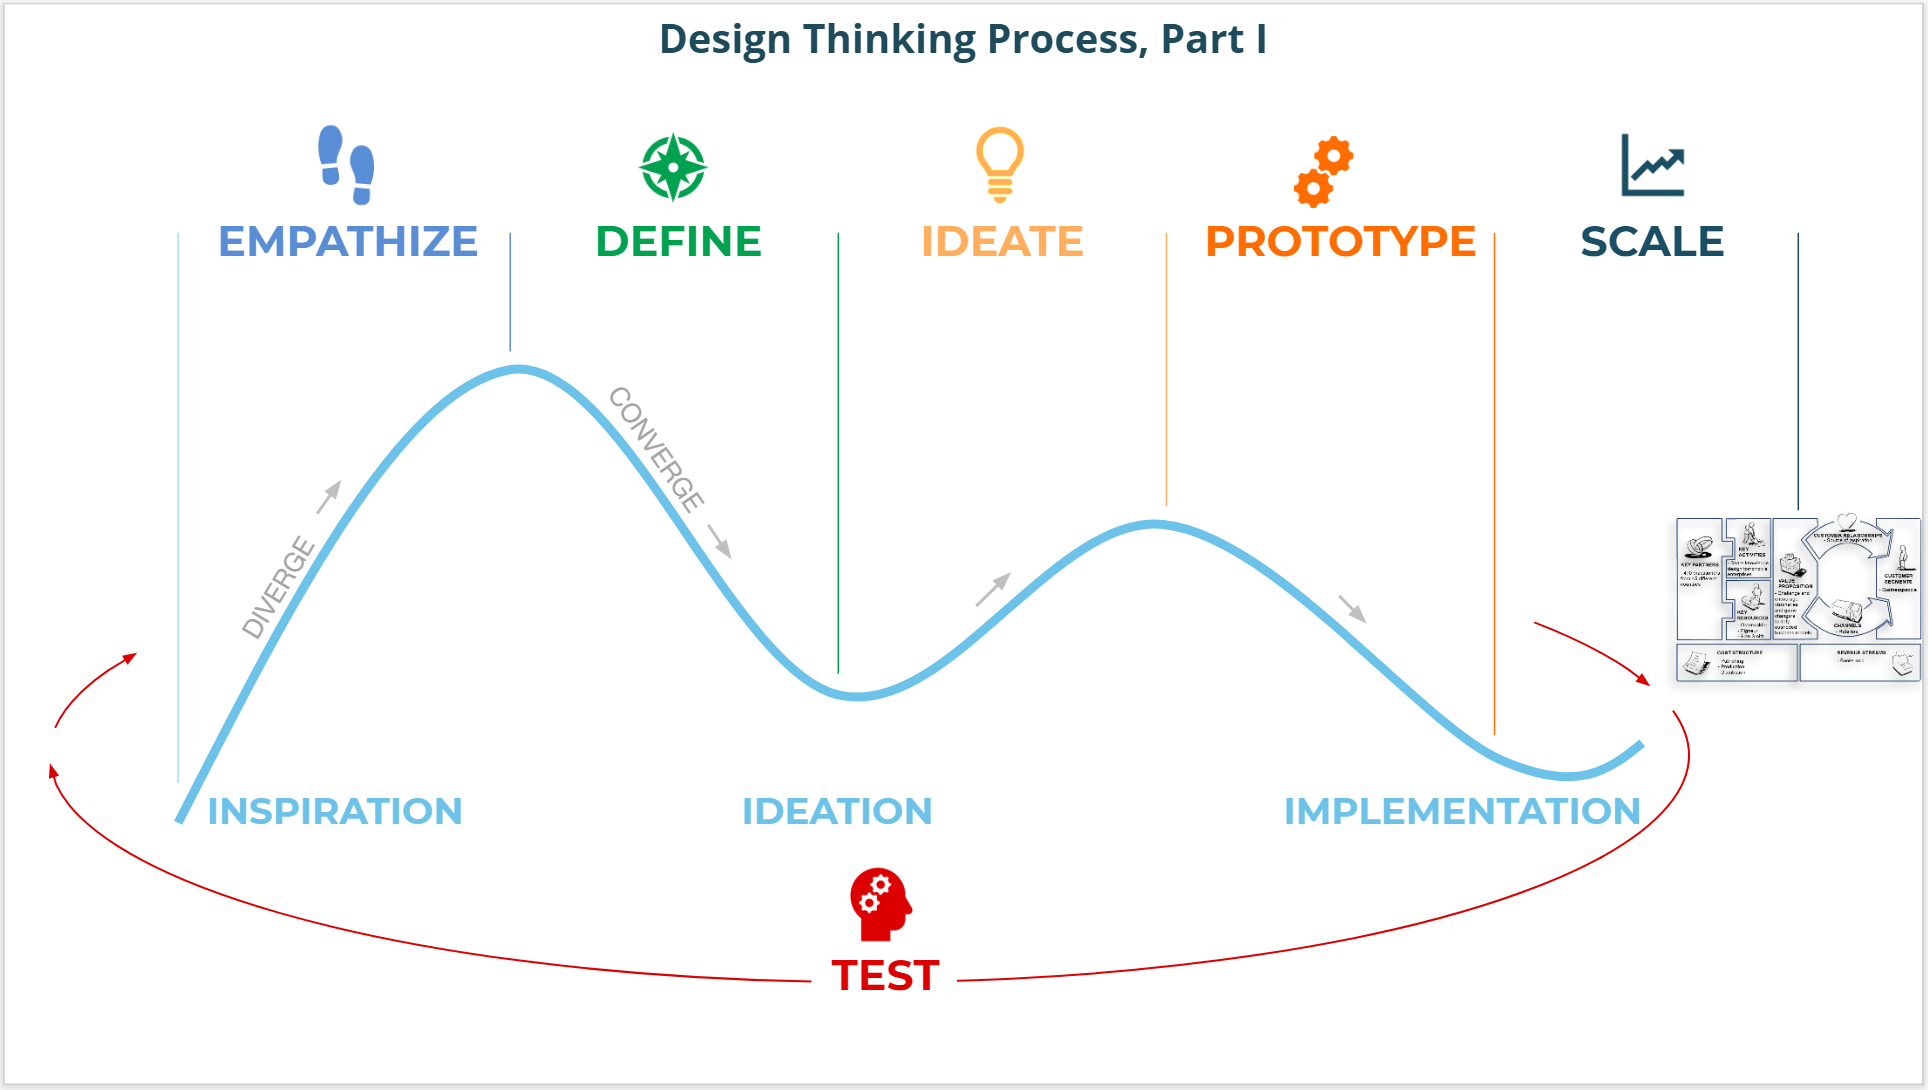 Design thinking process with human centered design for social enterprise